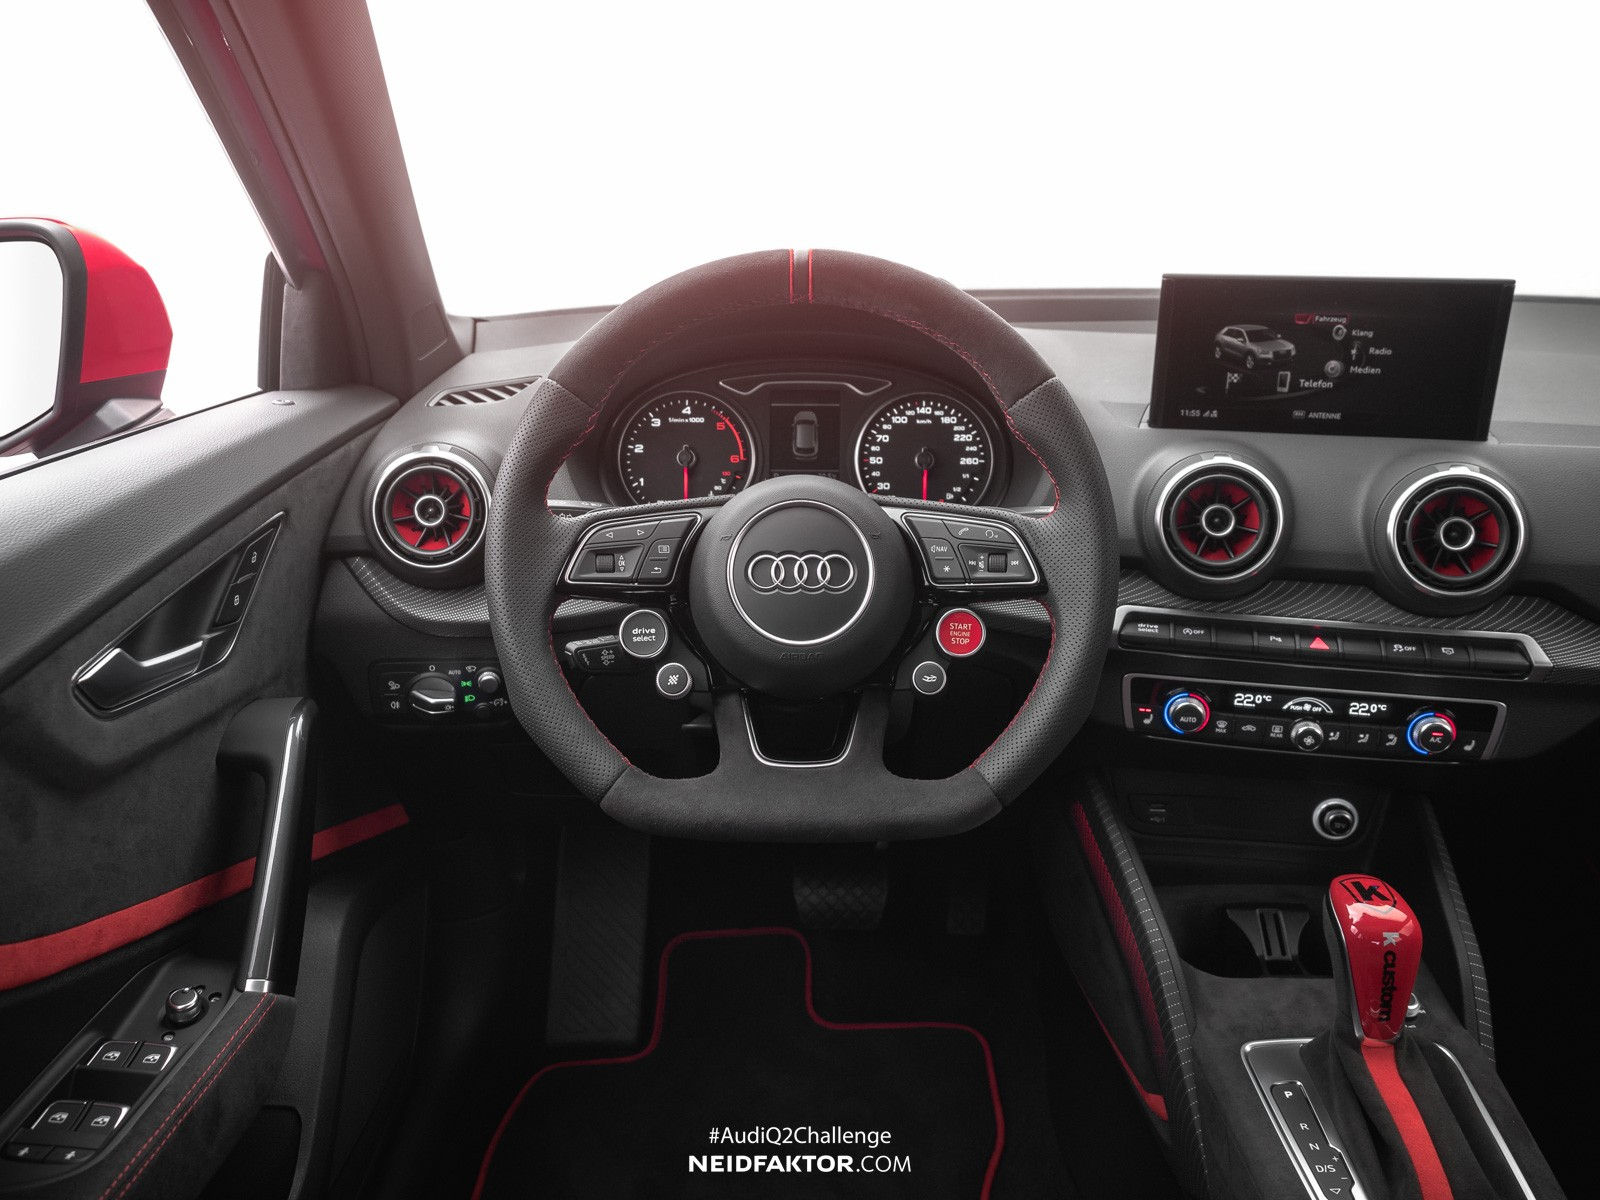 Coolest Audi Q2 Interior Ever Comes From Neidfaktor ...